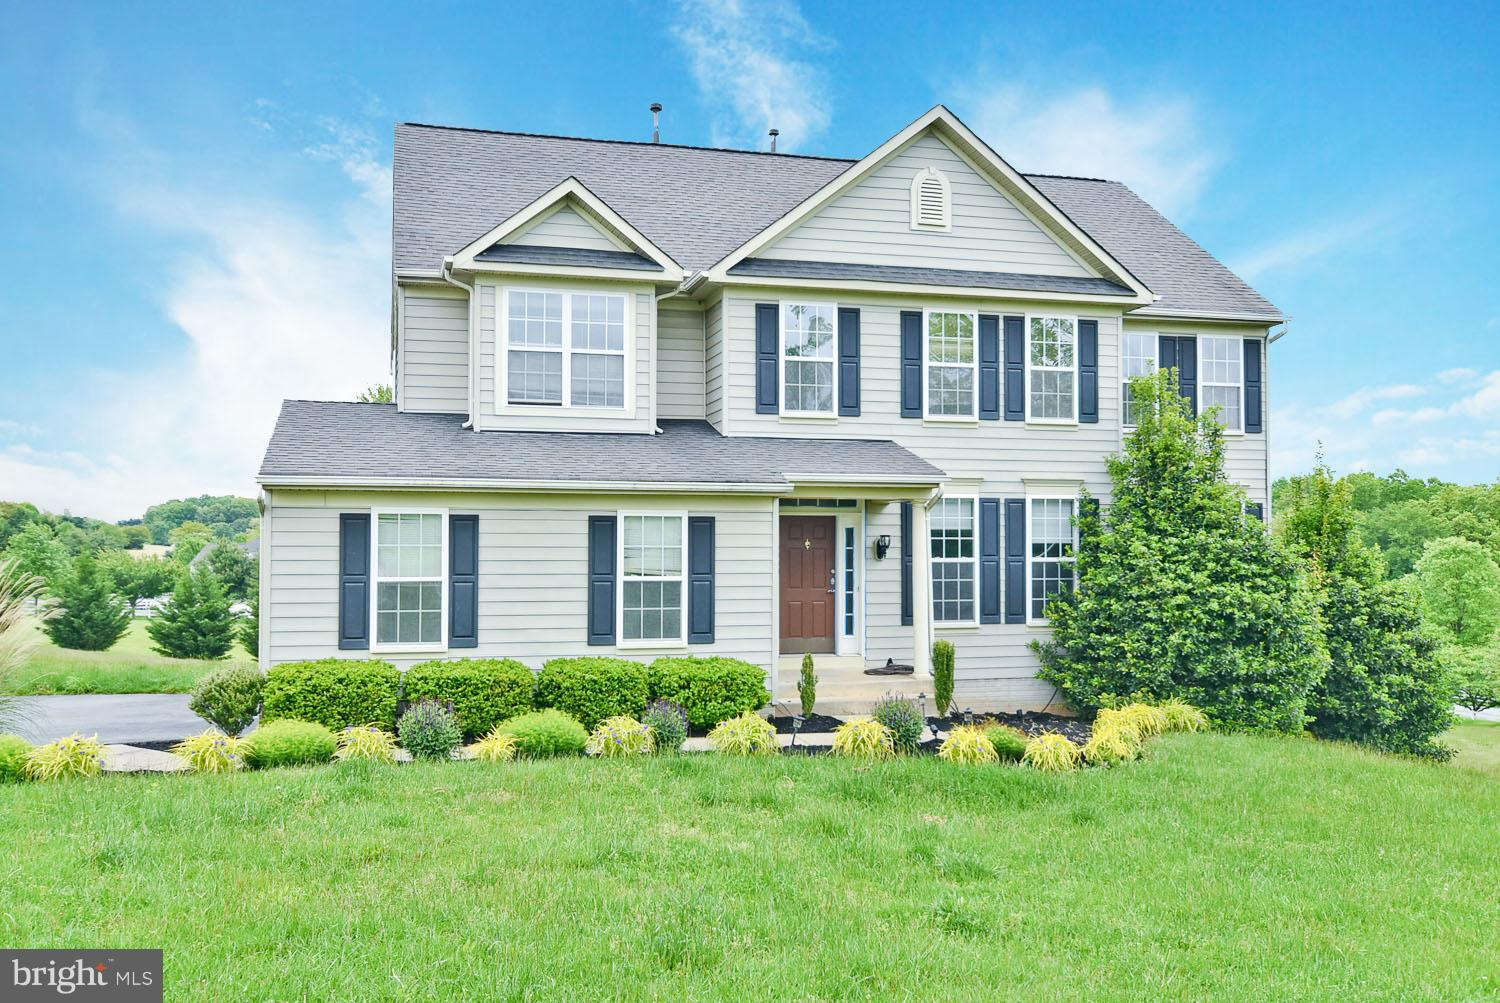 5885 Moss Creek Dr, Mount Airy, MD, 21771